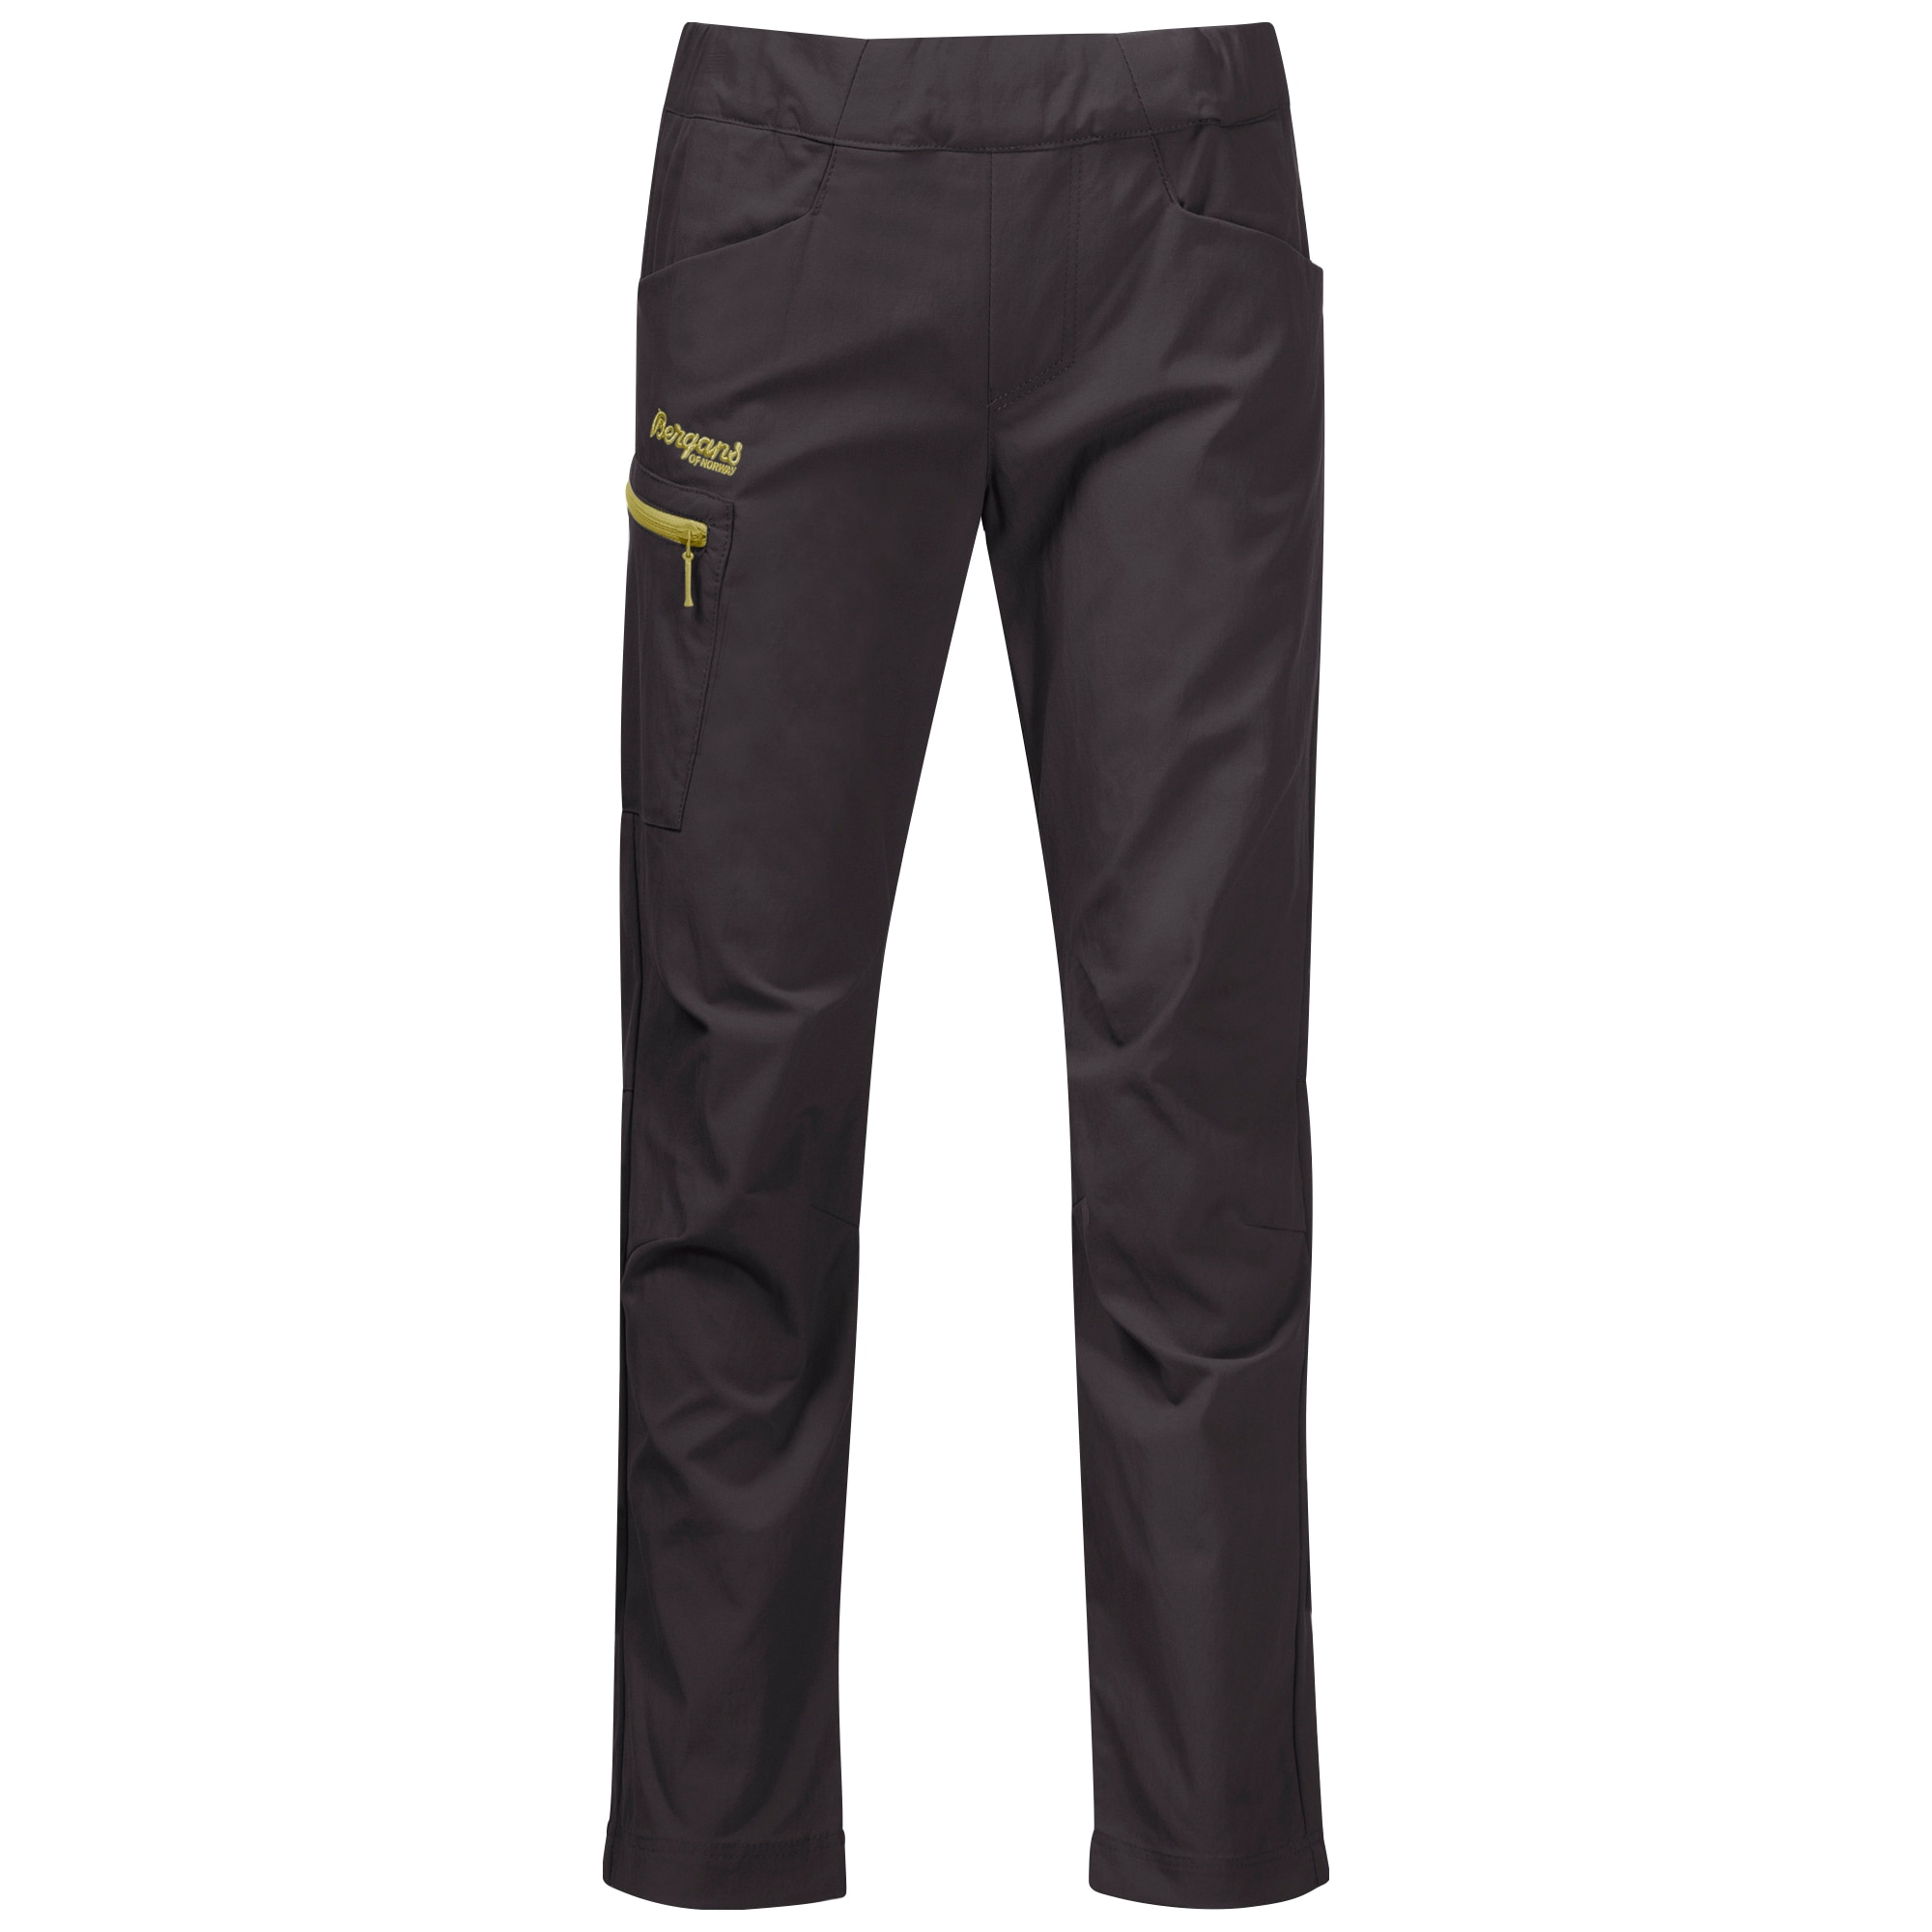 Lilletind V2 Light Softshell Kids Pants